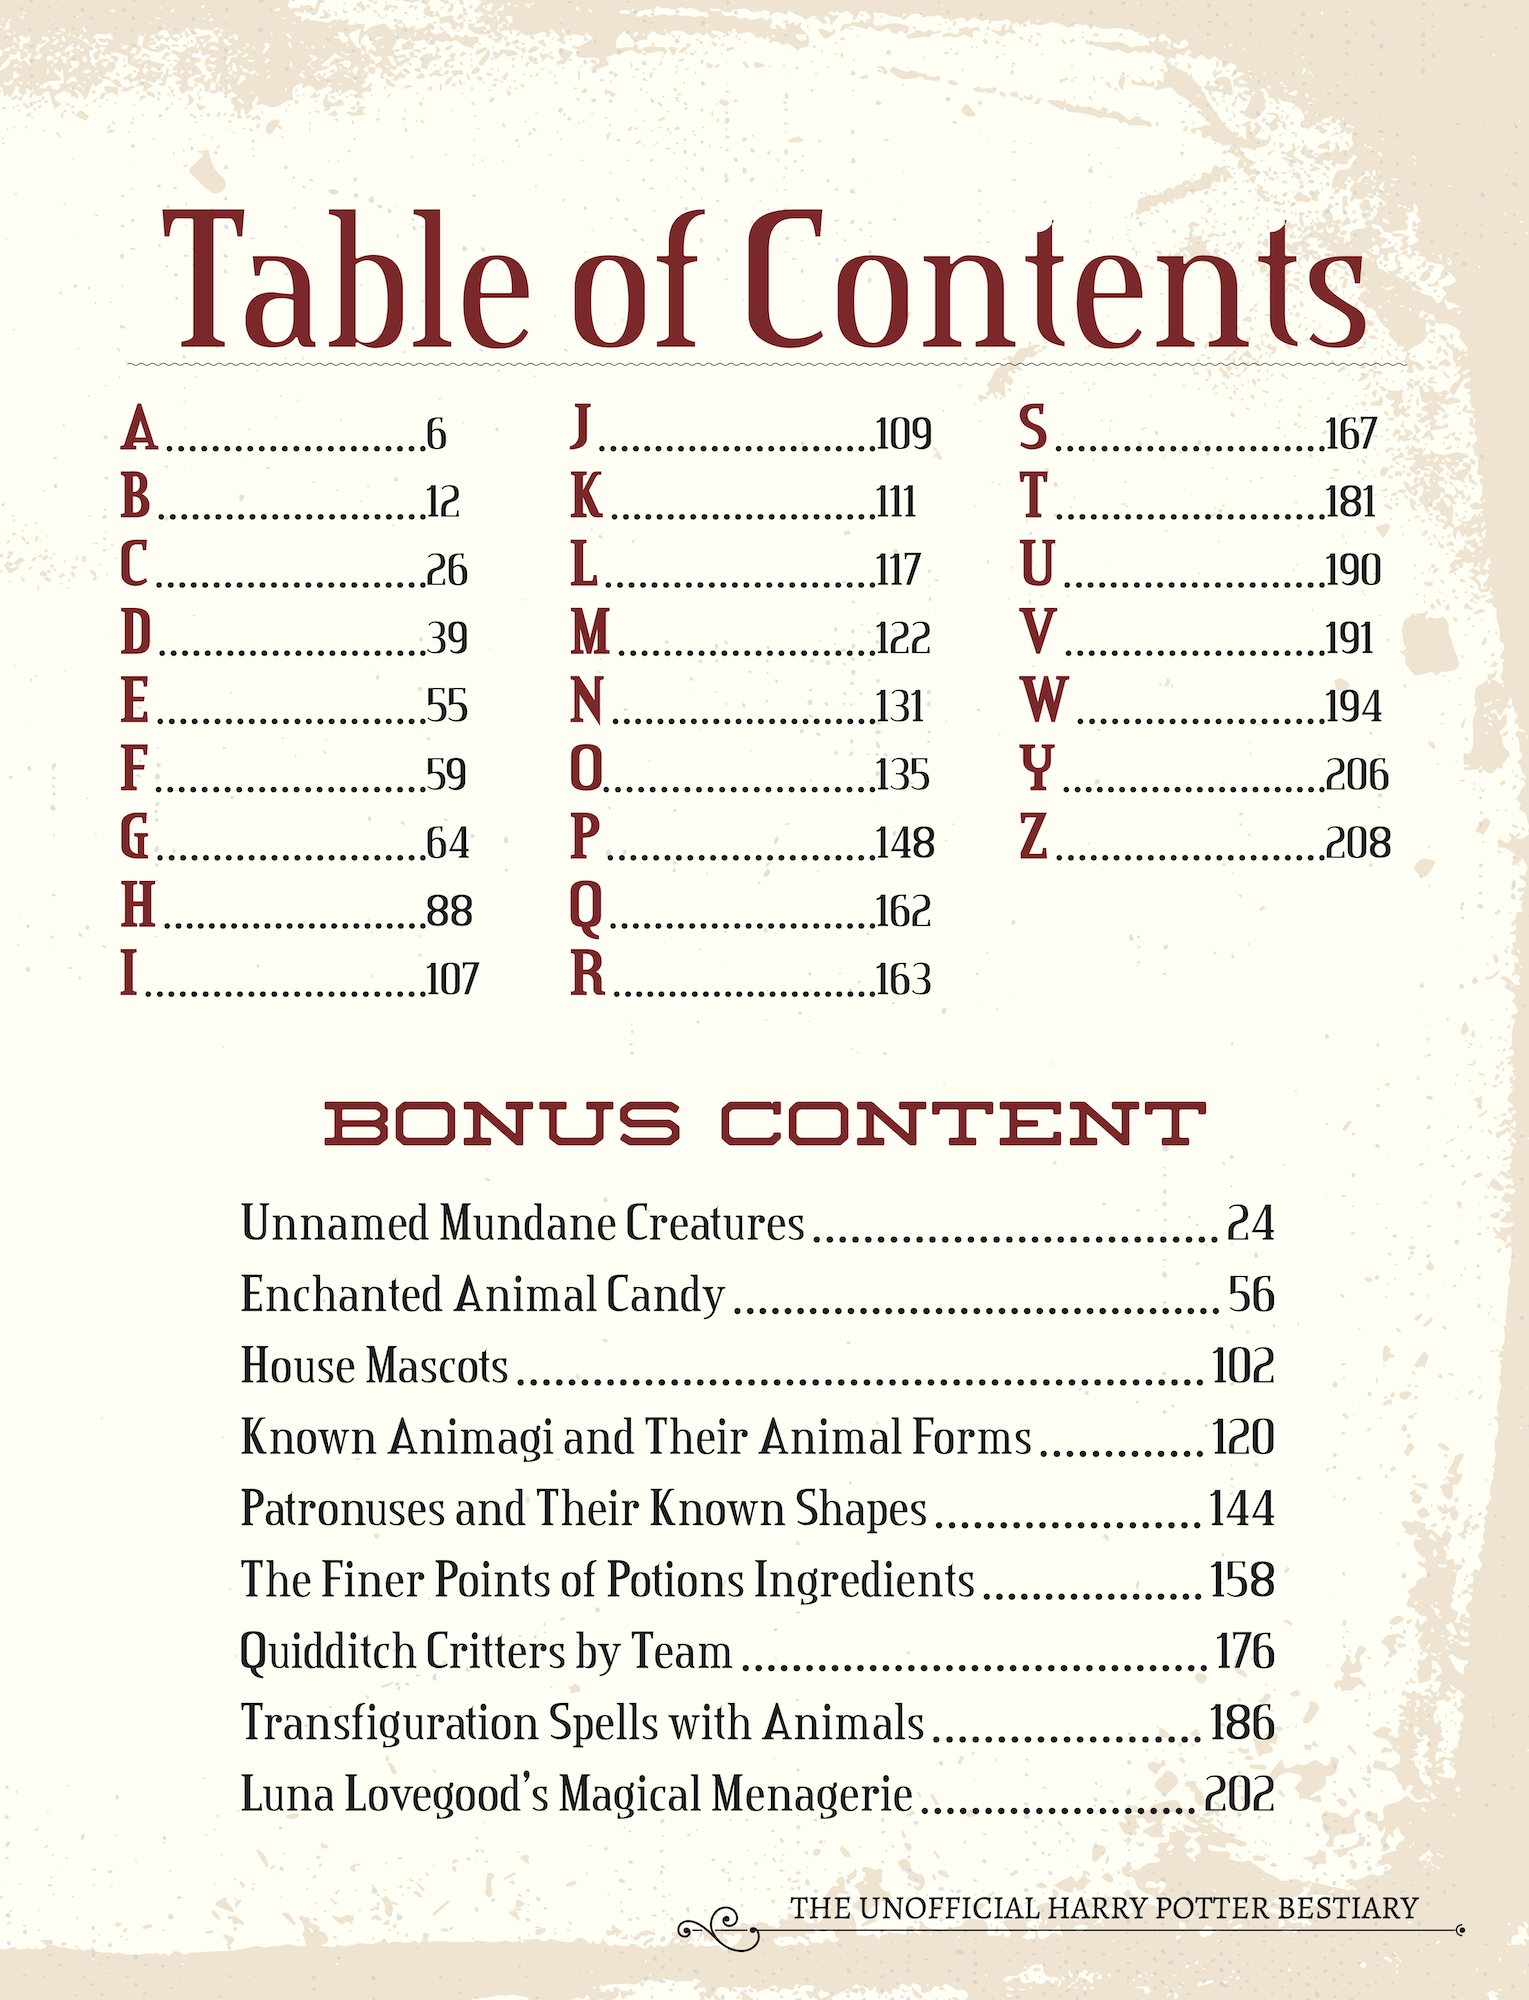 Unofficial Bestiary TOC